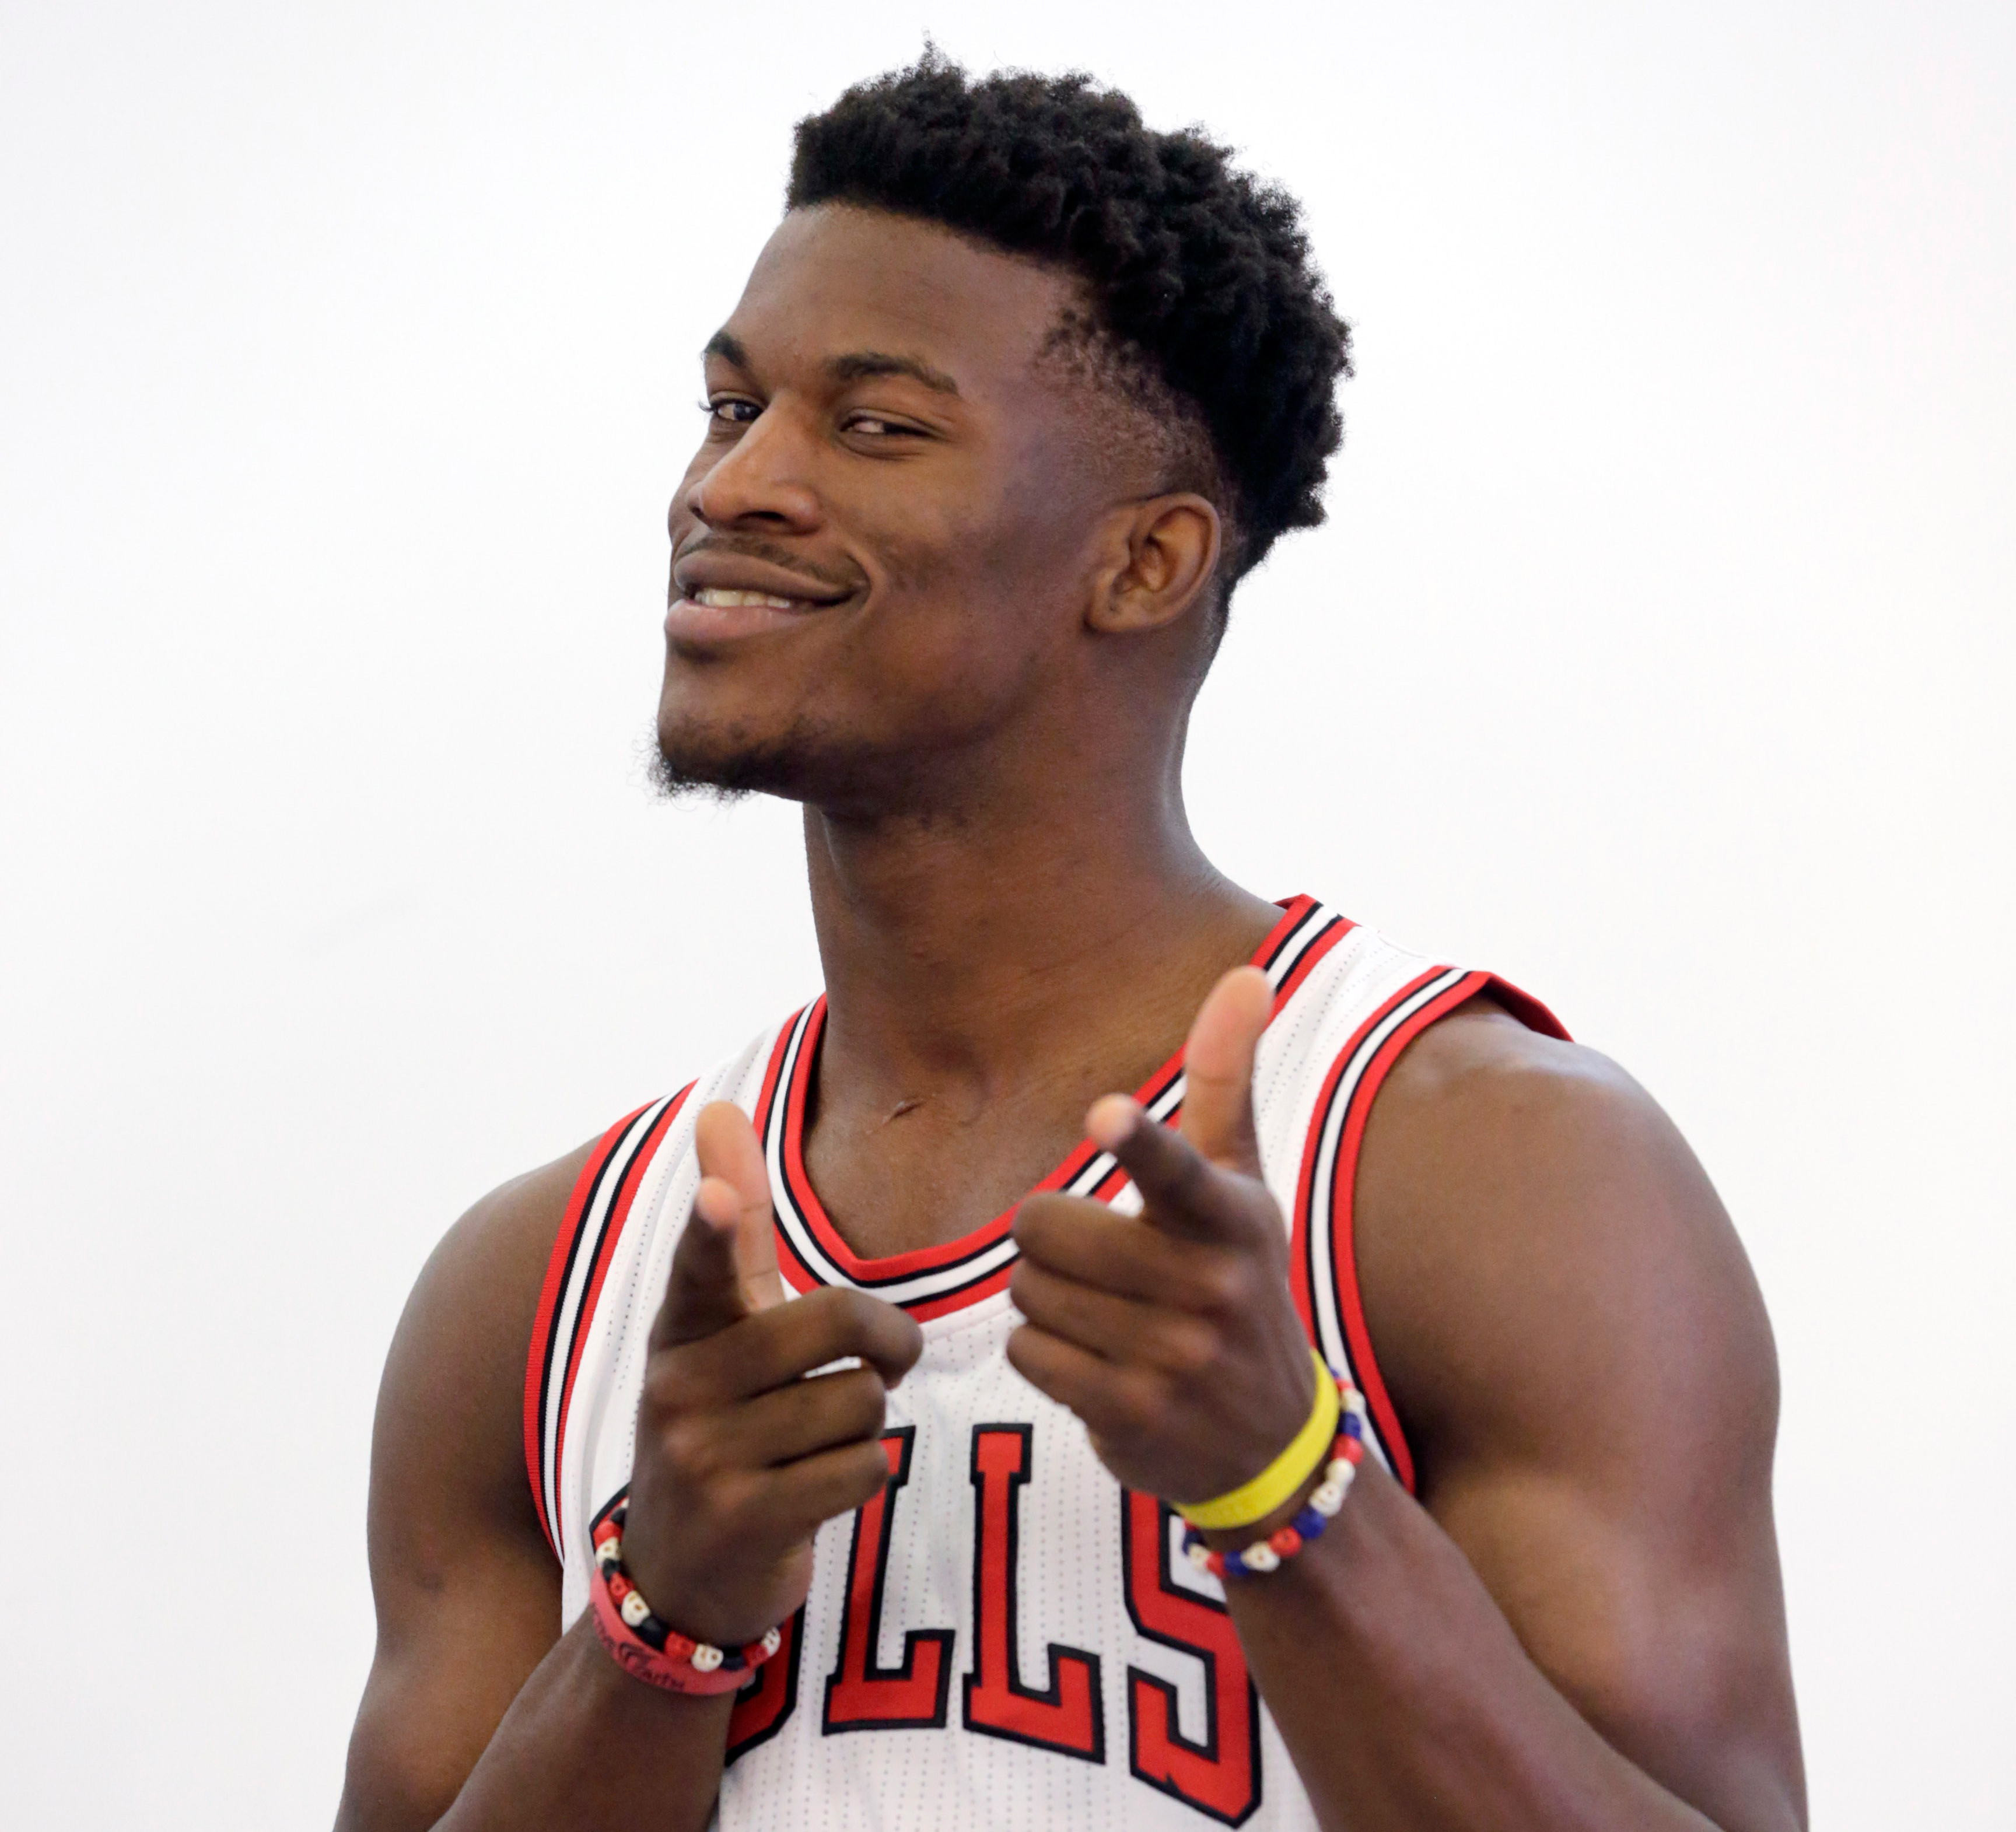 Jimmy Butler On Singing For Taylor Swift And Winning In Chicago Rolling Stone